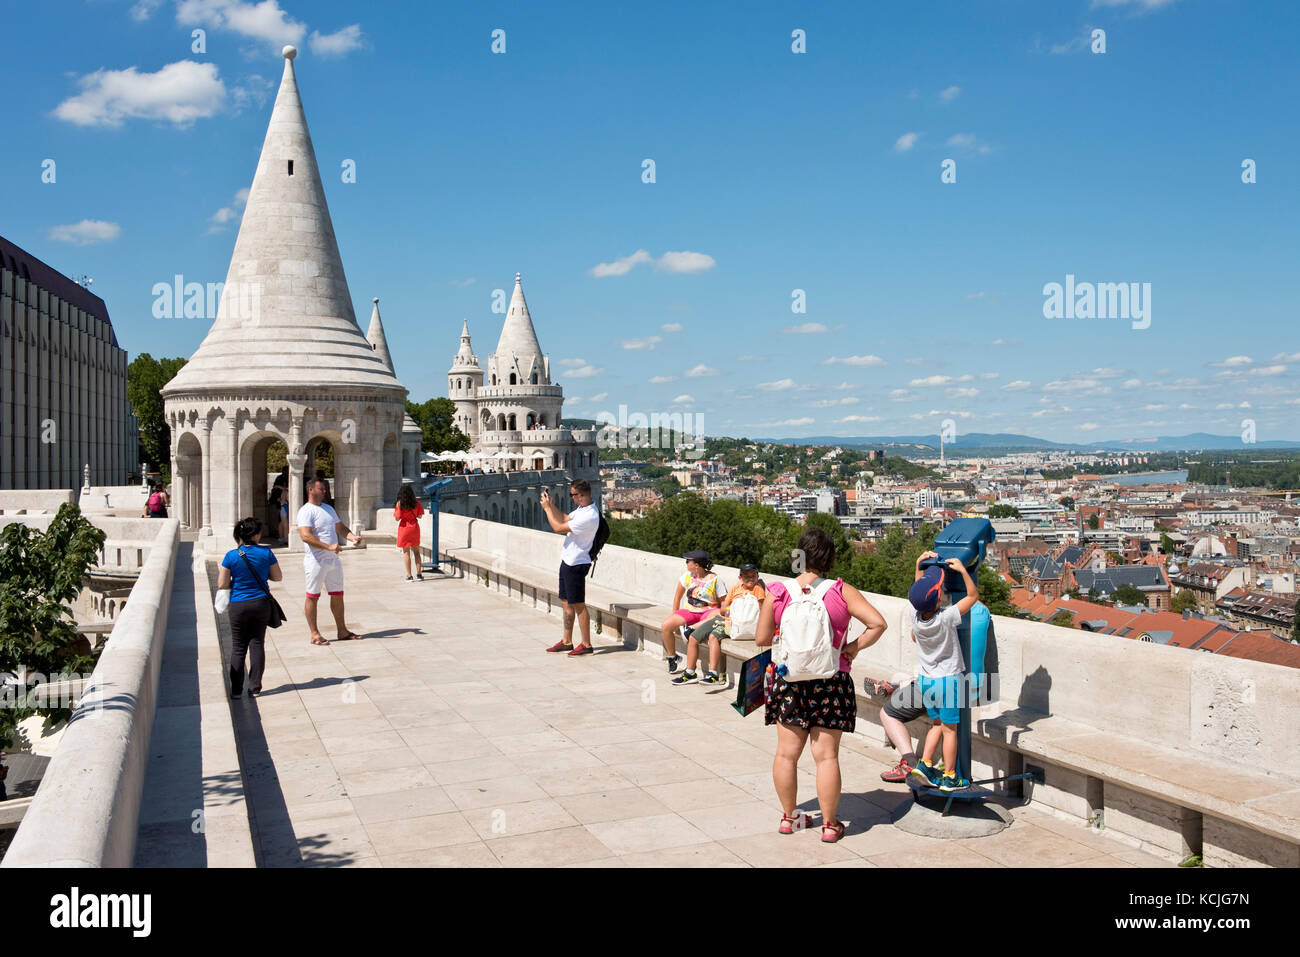 Tourists on the walls of the Fisherman's Bastion in Budapest looking at the view and taking photographs pictures Stock Photo